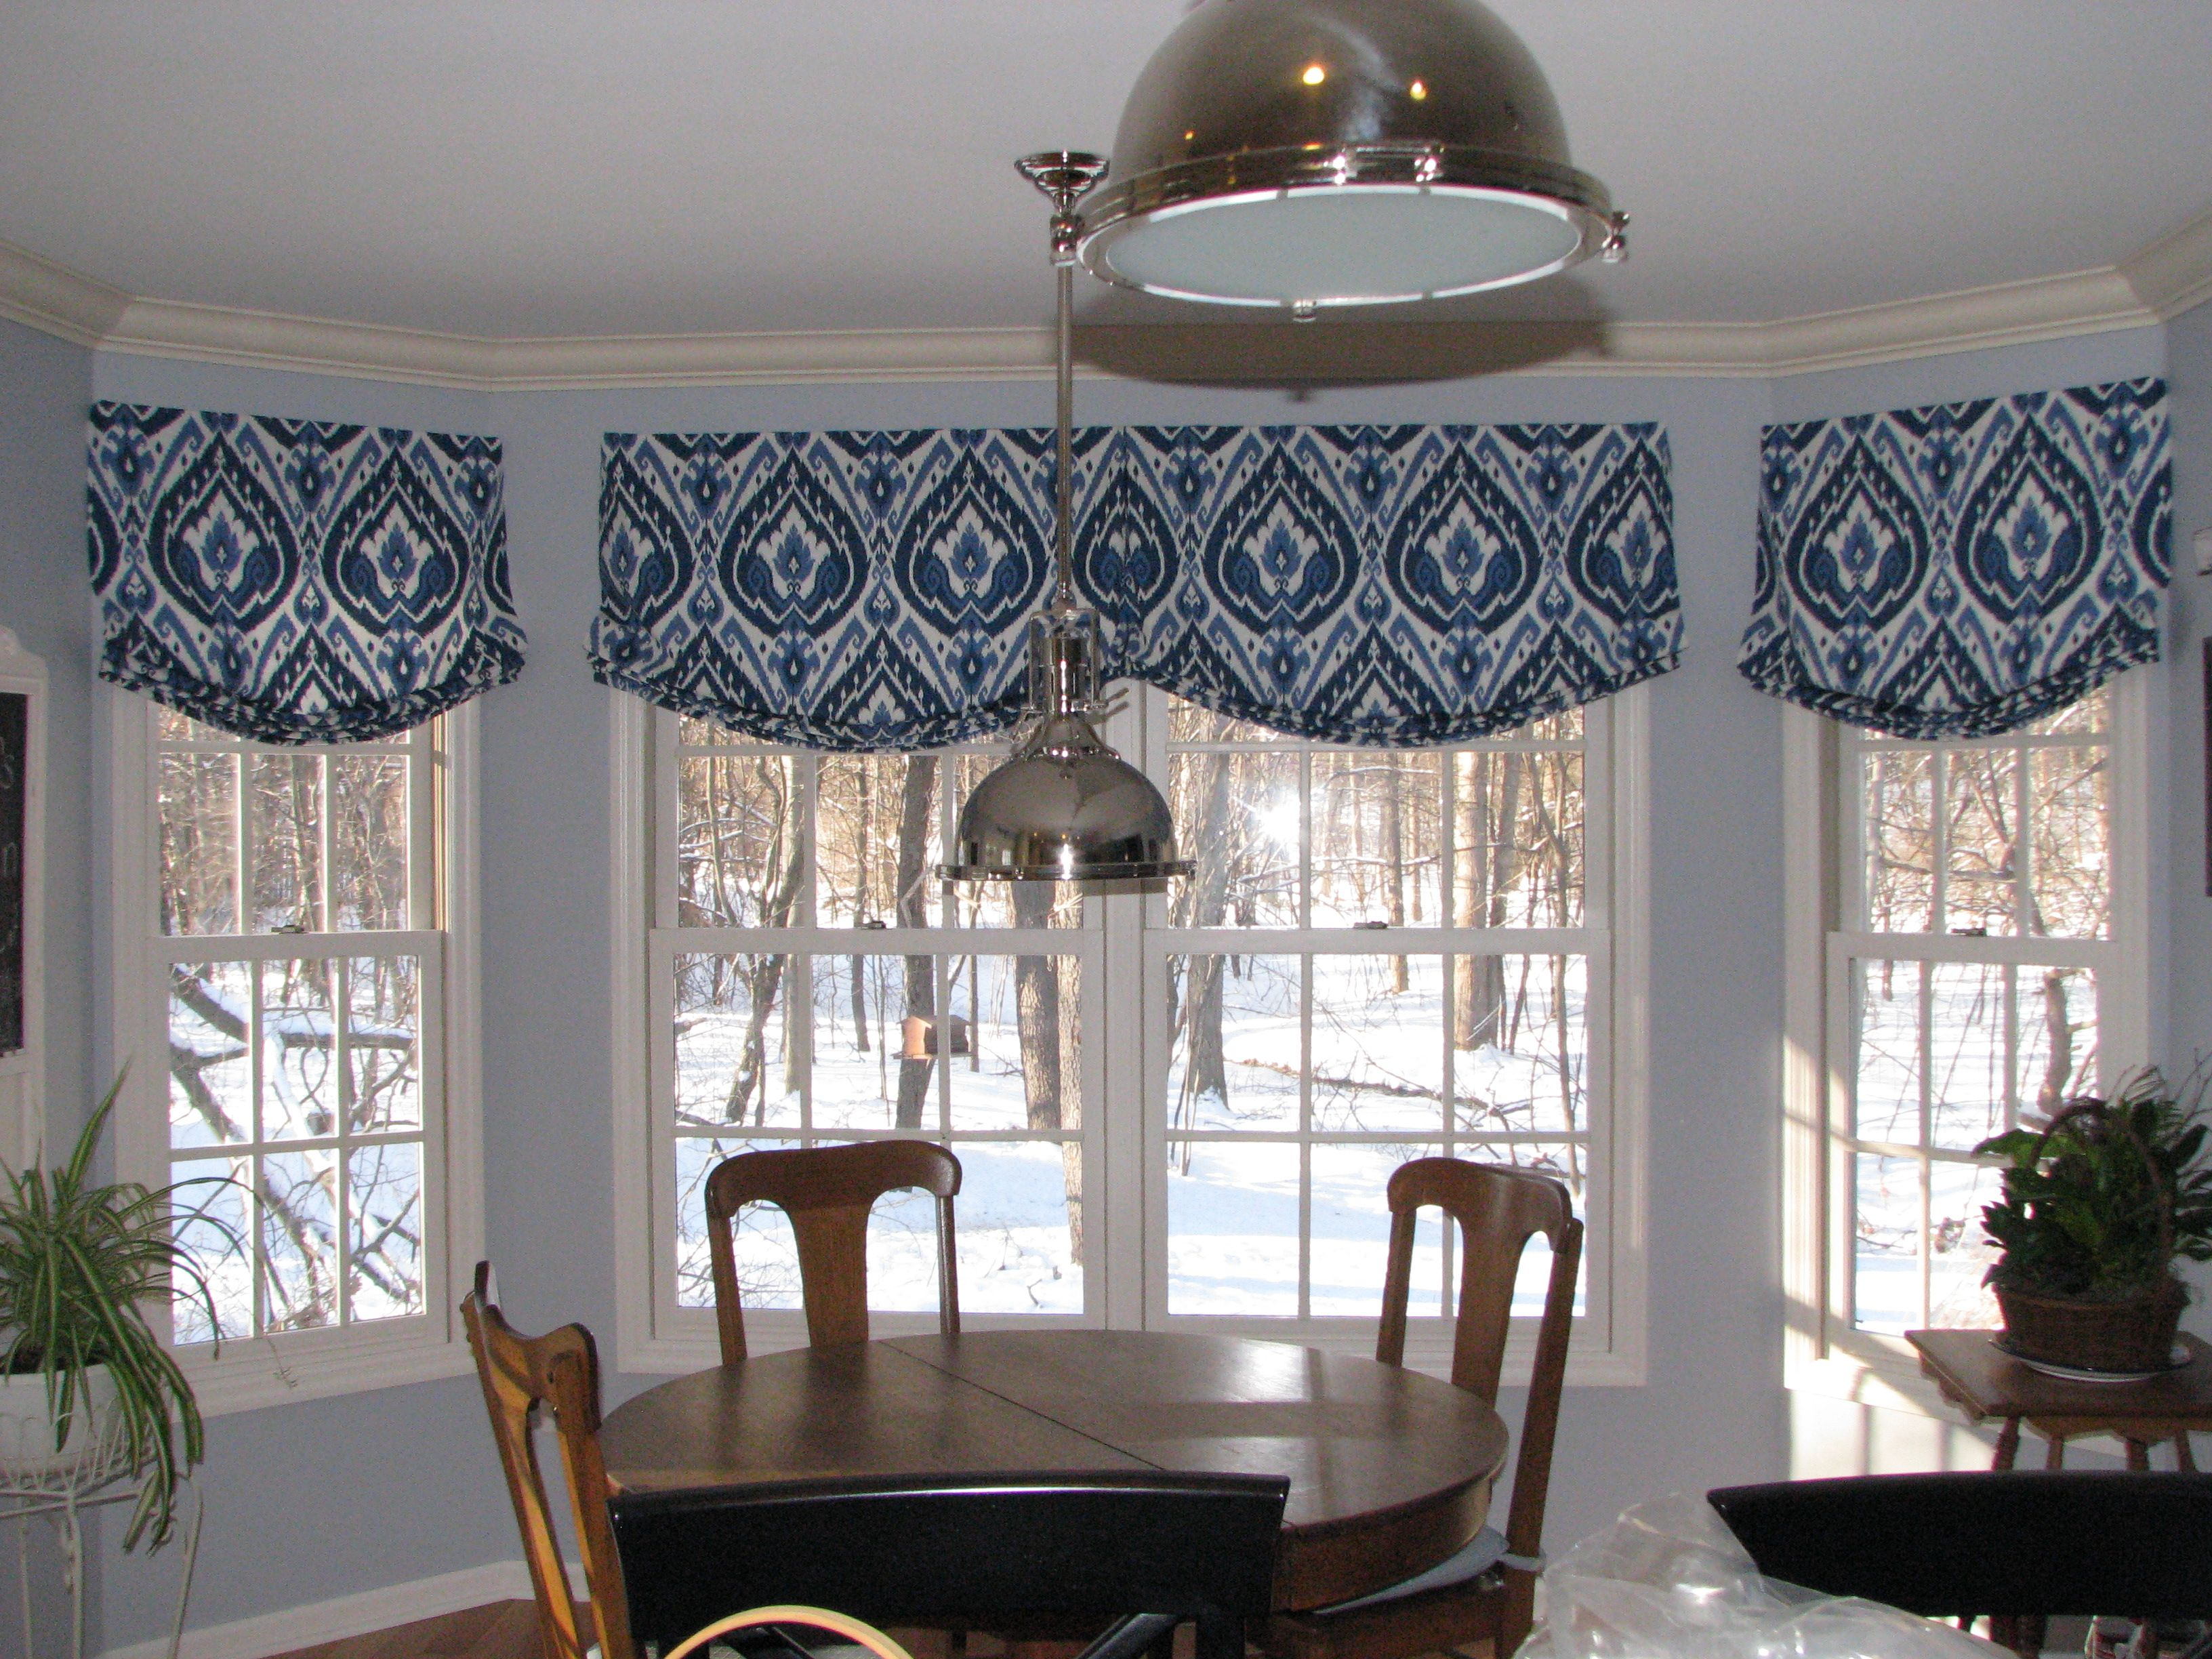 Relaxed roman shade valance in Ultra Marine Ikat pattern creates a ...